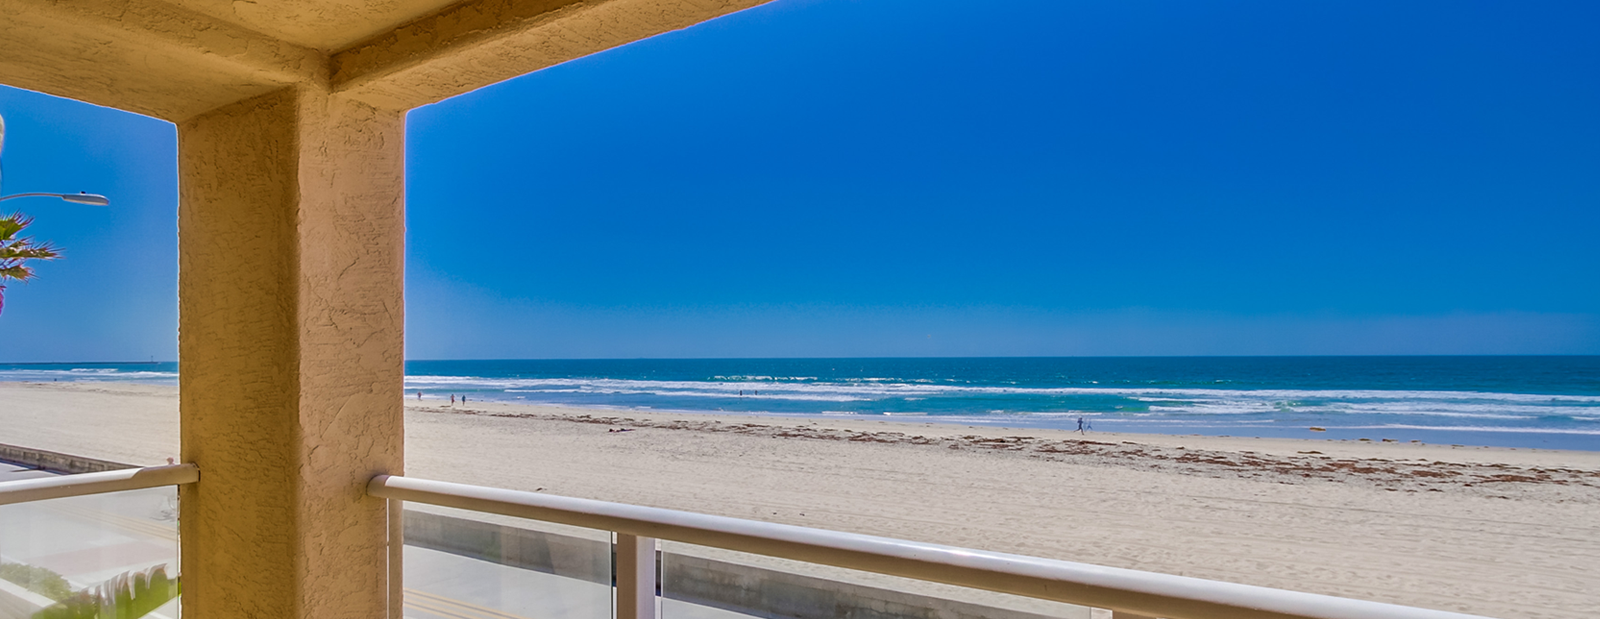 balcony-beach-view